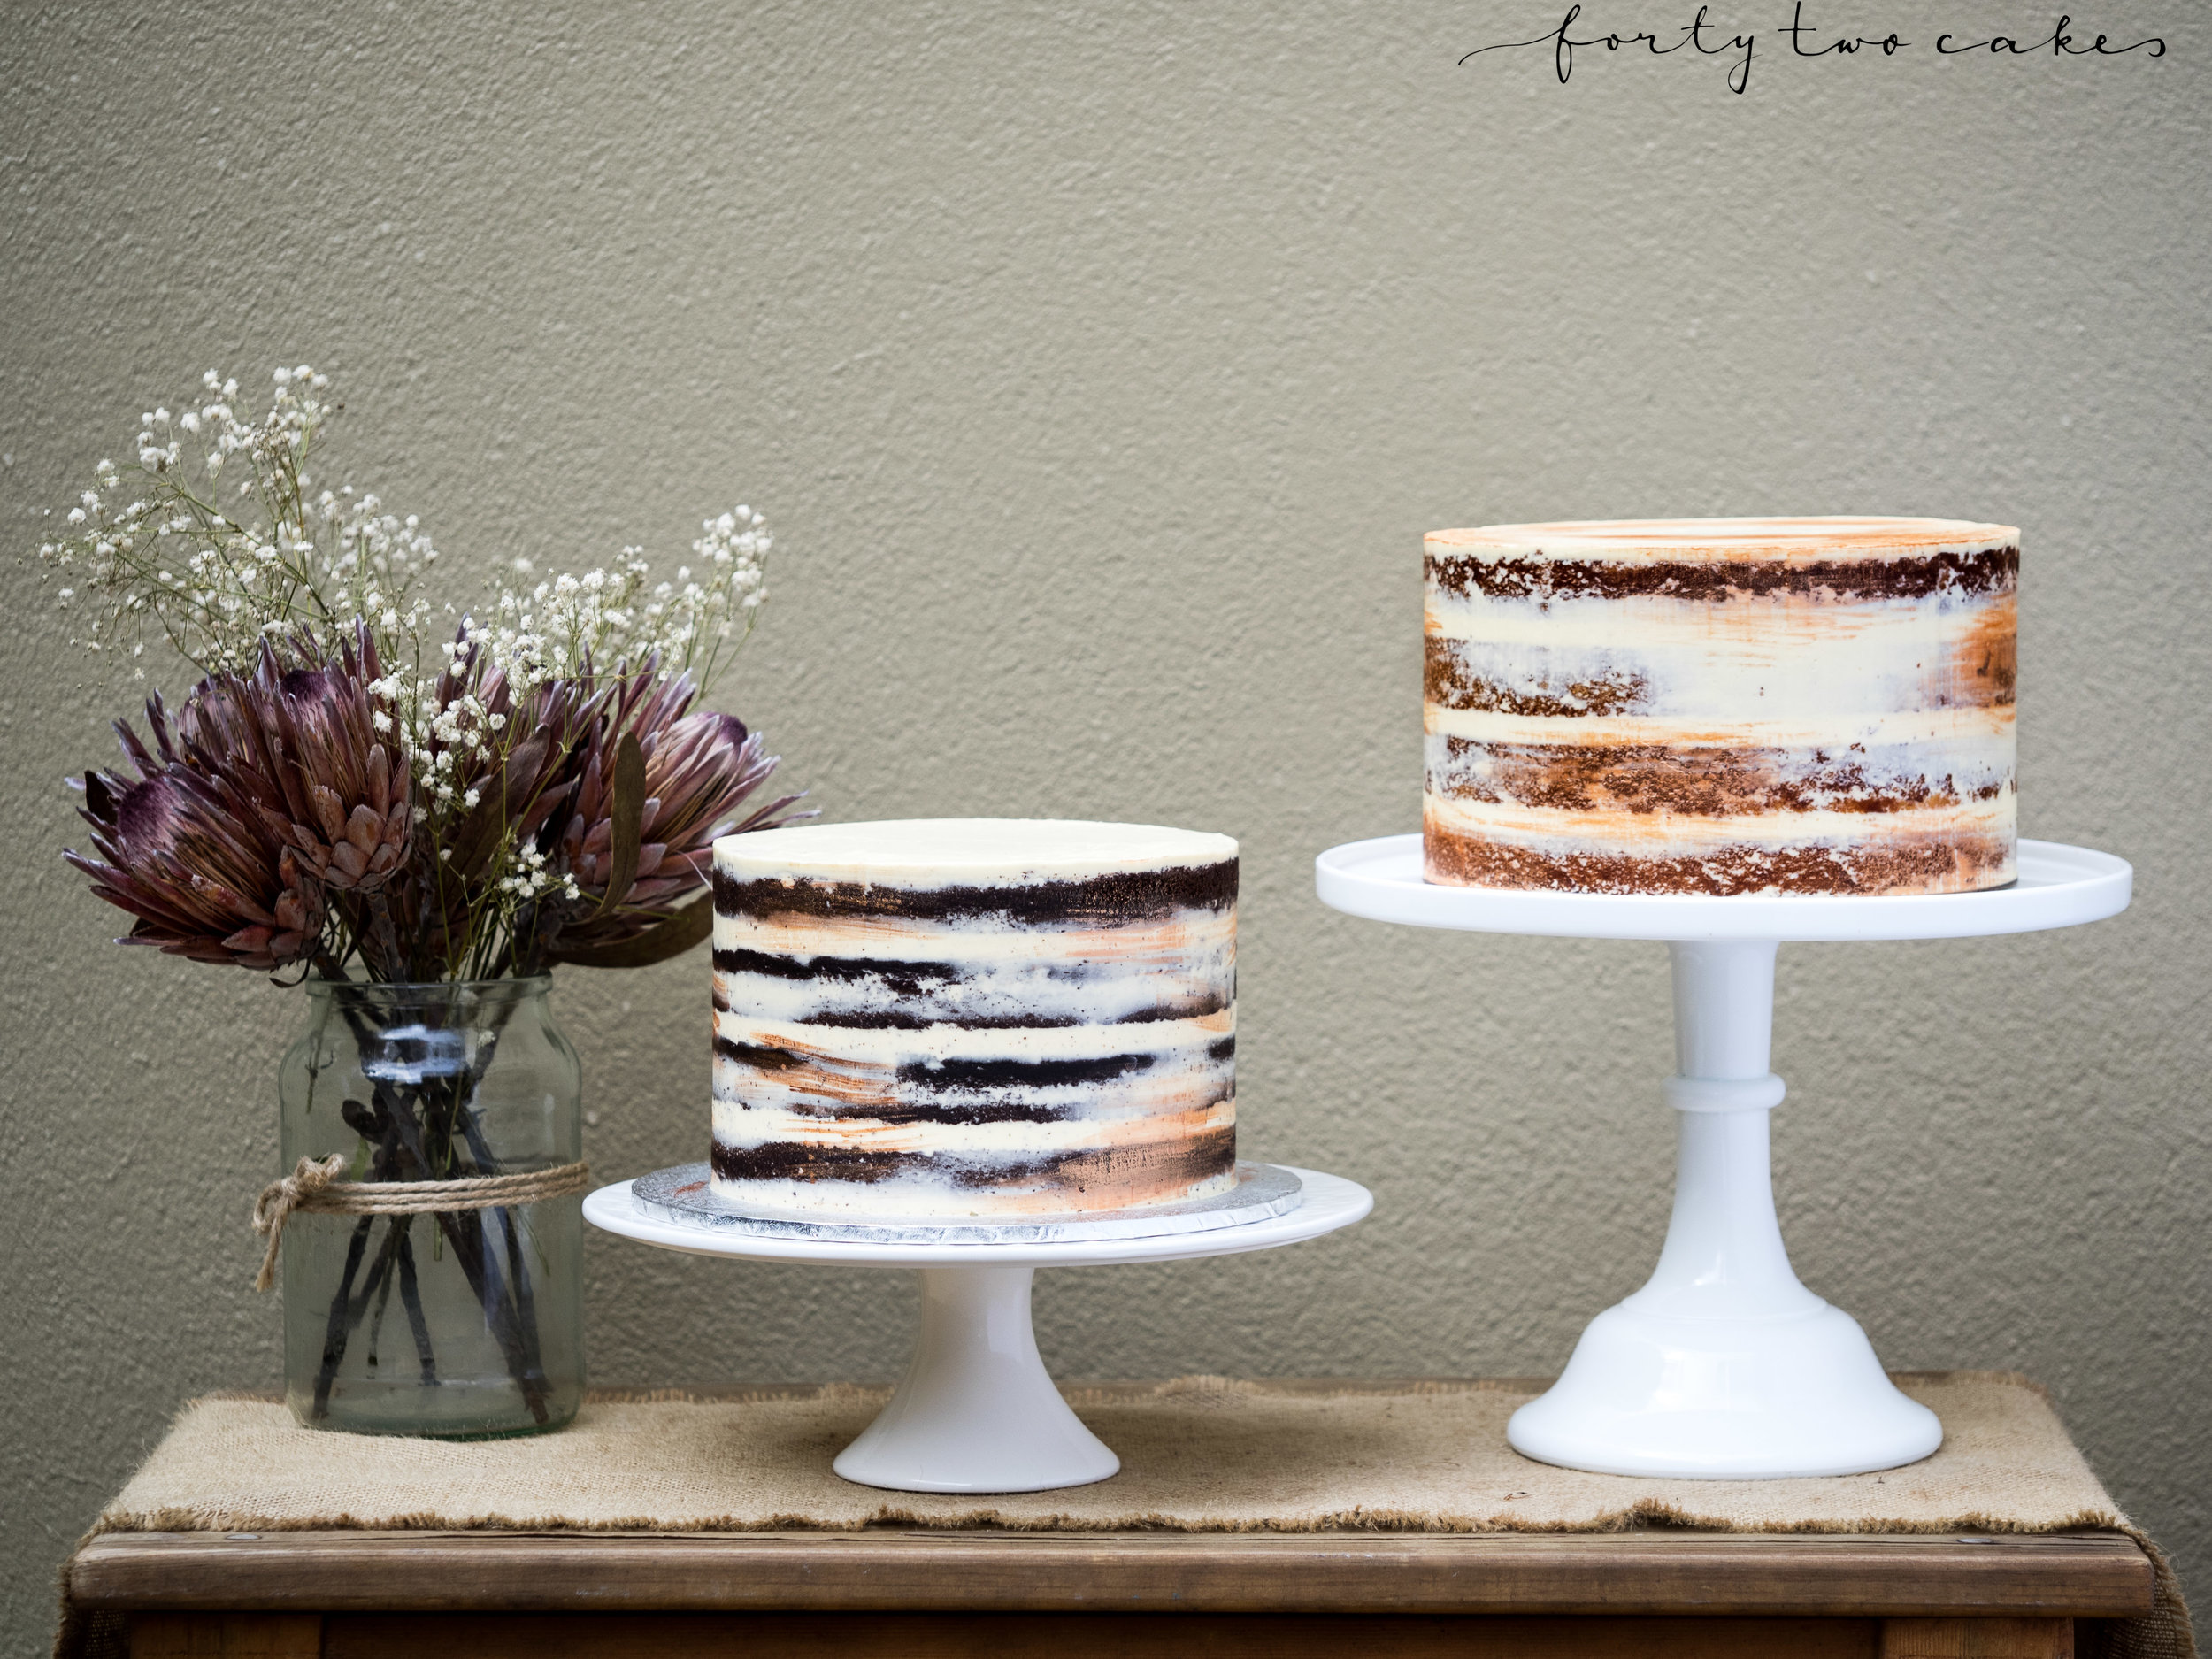 Forty-Two Cakes - Seminaked-05-2.jpg